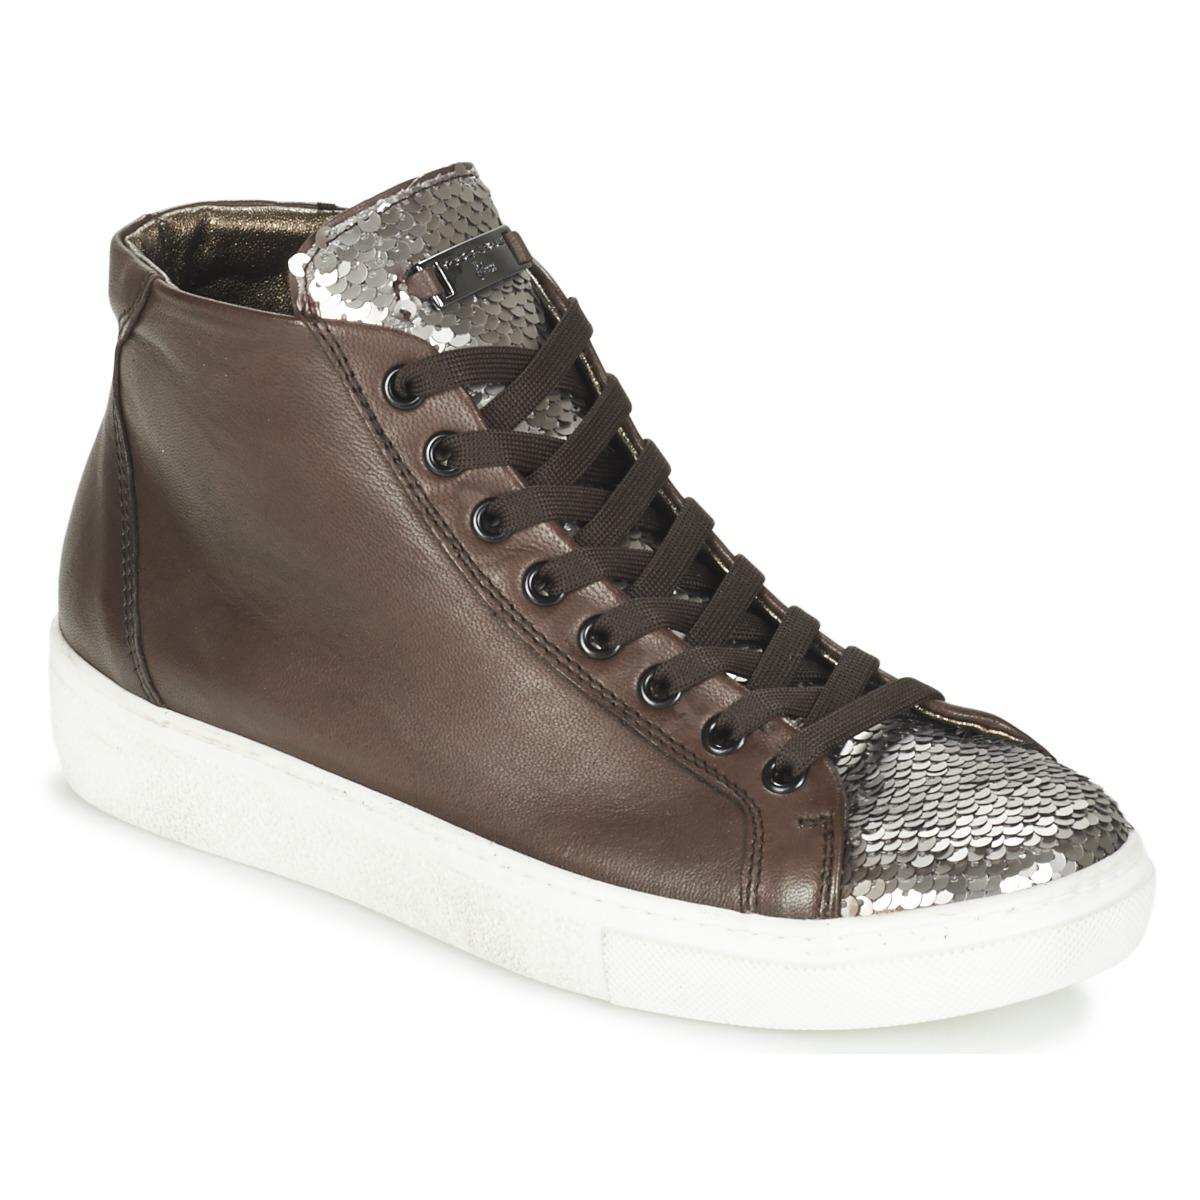 Big Discount For Sale Tosca Blu Stivale Alexa women's Shoes (High-top Trainers) in Quality Free Shipping For Sale New Release Buy Cheap Visa Payment ew10W4bRD